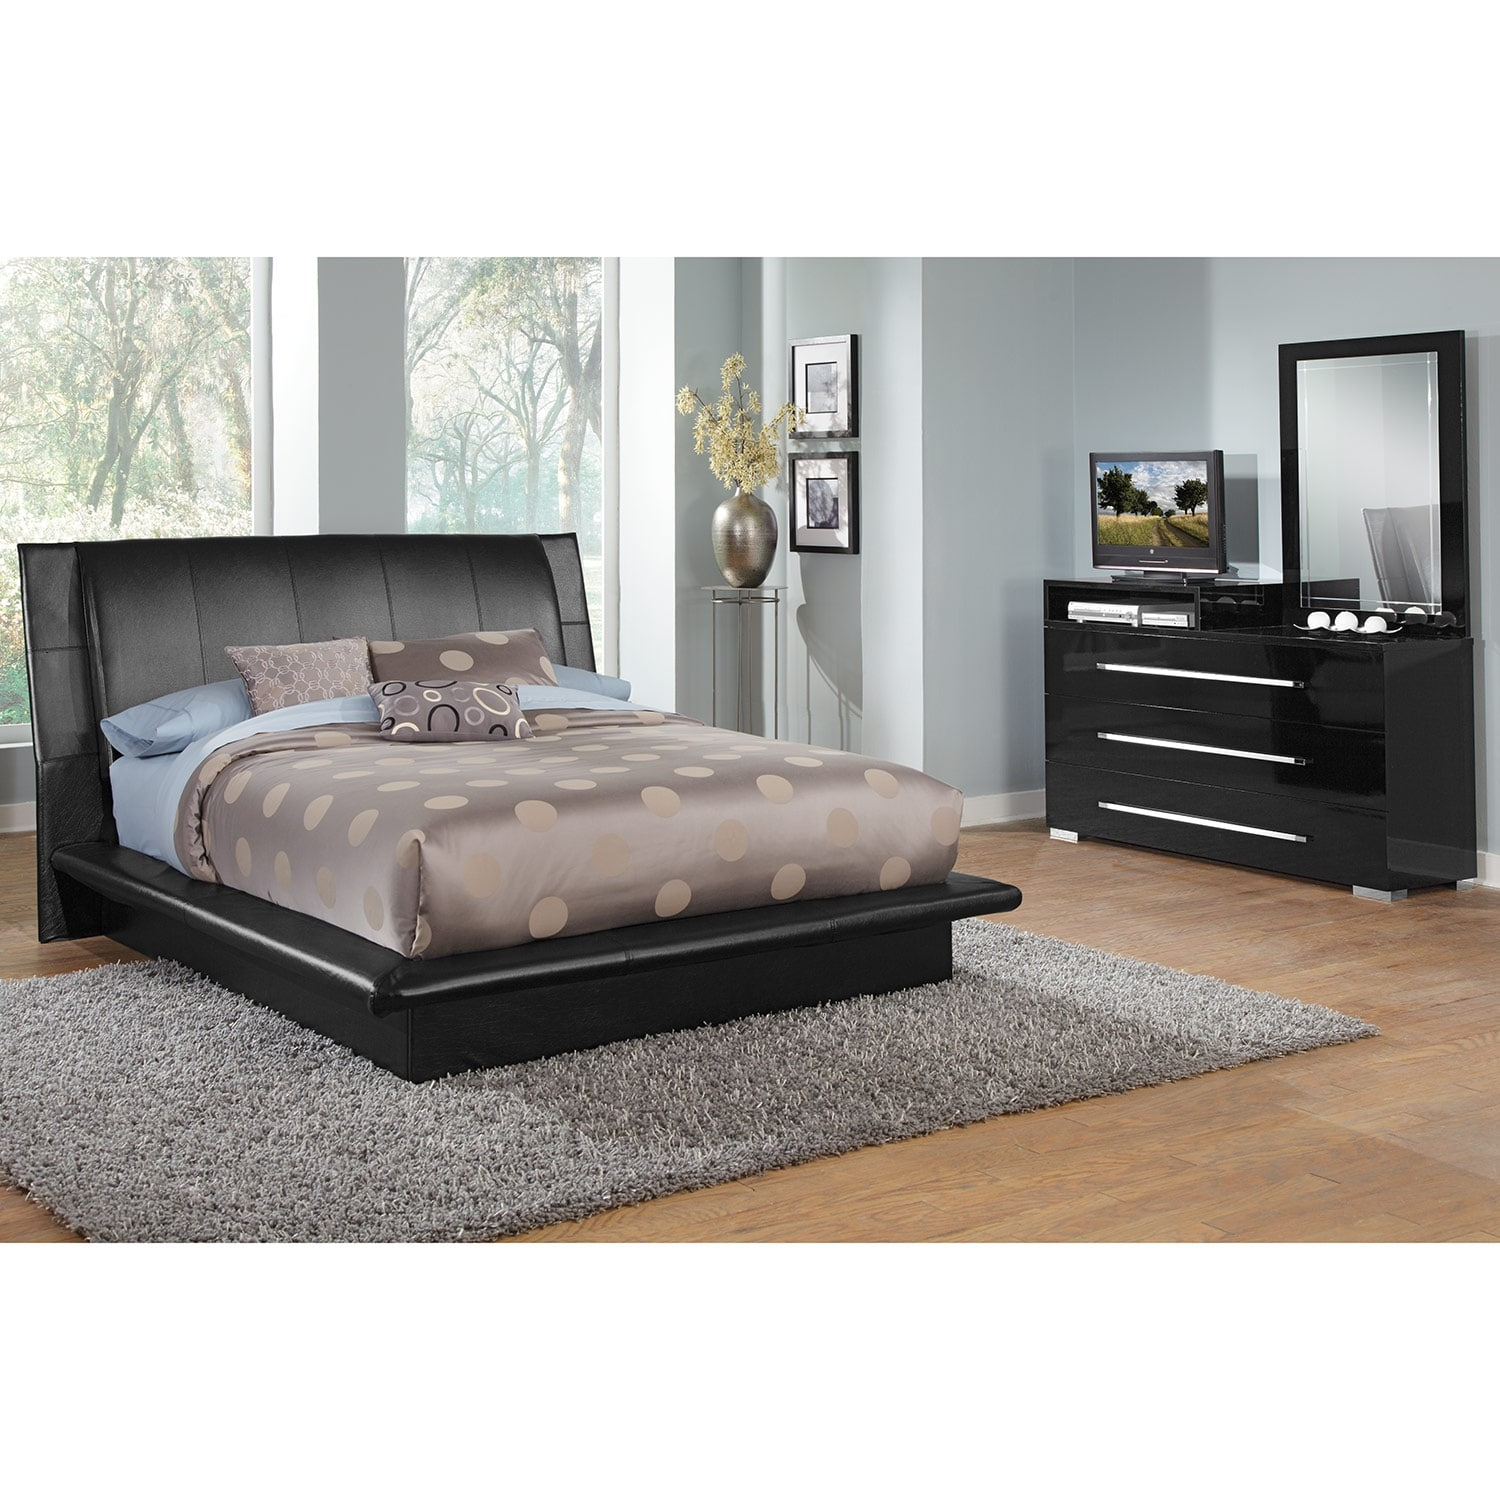 Value City Furniture Bedroom Sets